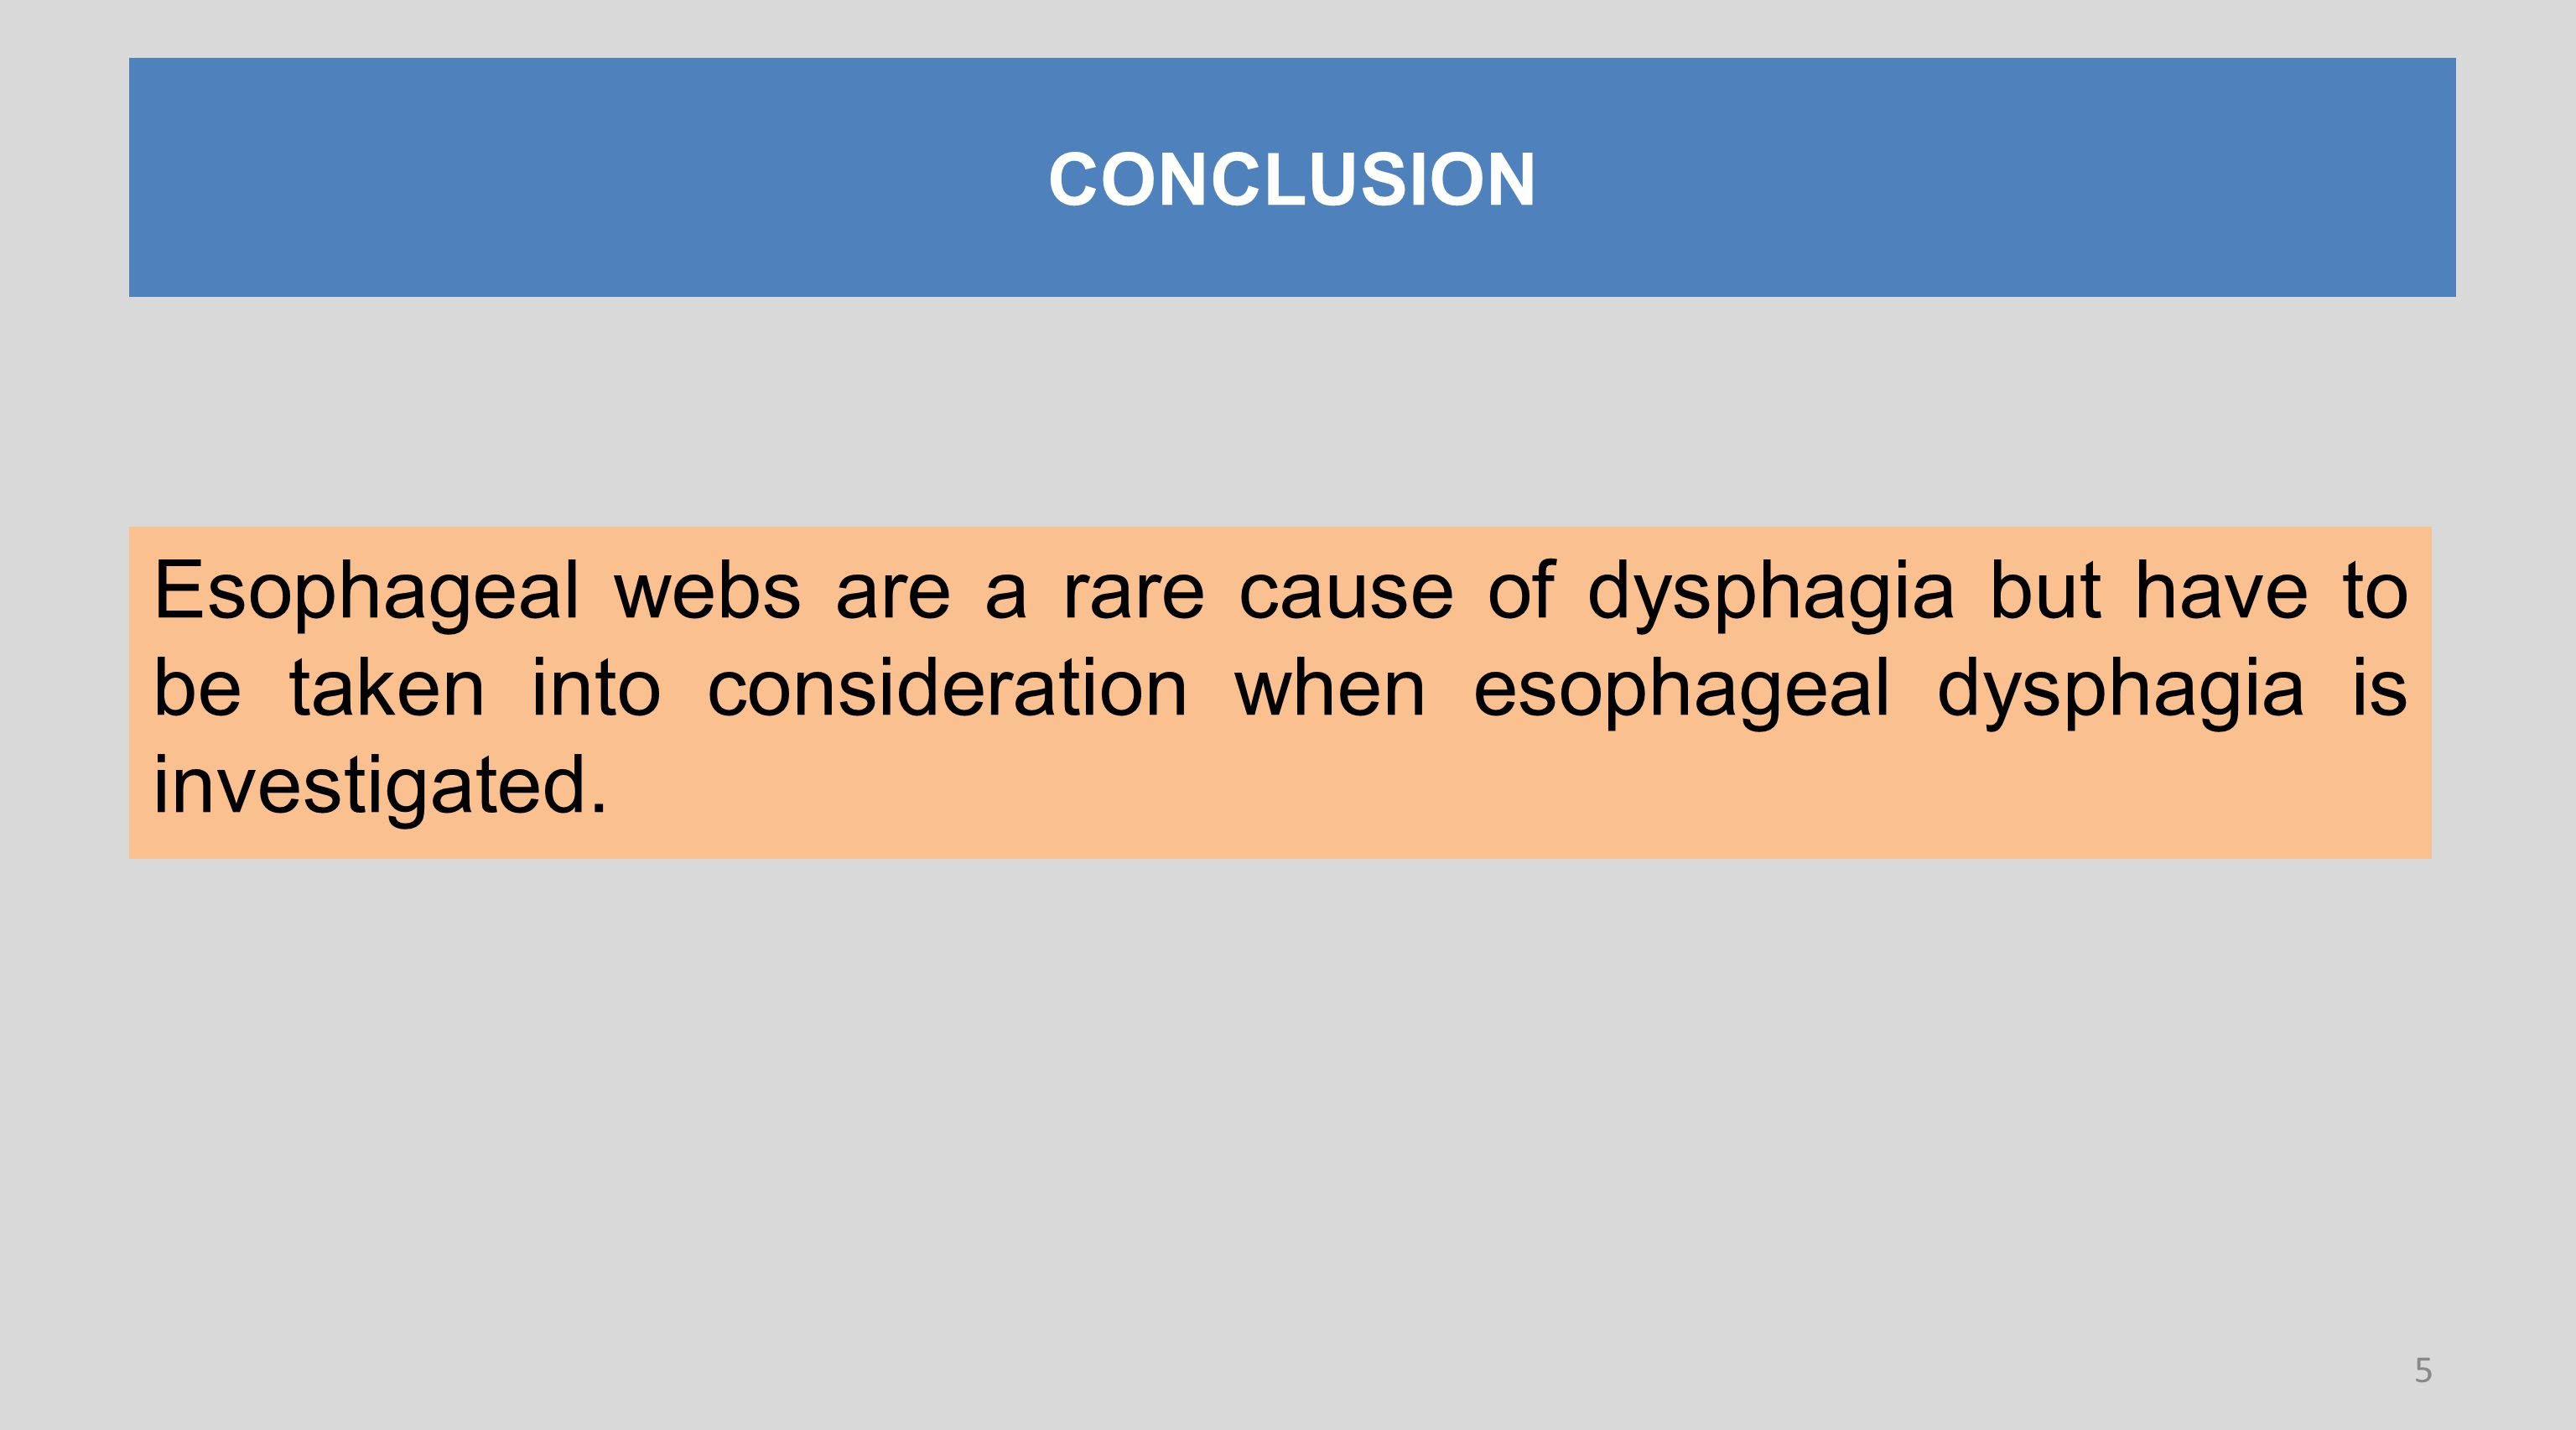 CONCLUSION Esophageal webs are a rare cause of dysphagia but have to be taken into consideration when esophageal dysphagia is investigated.